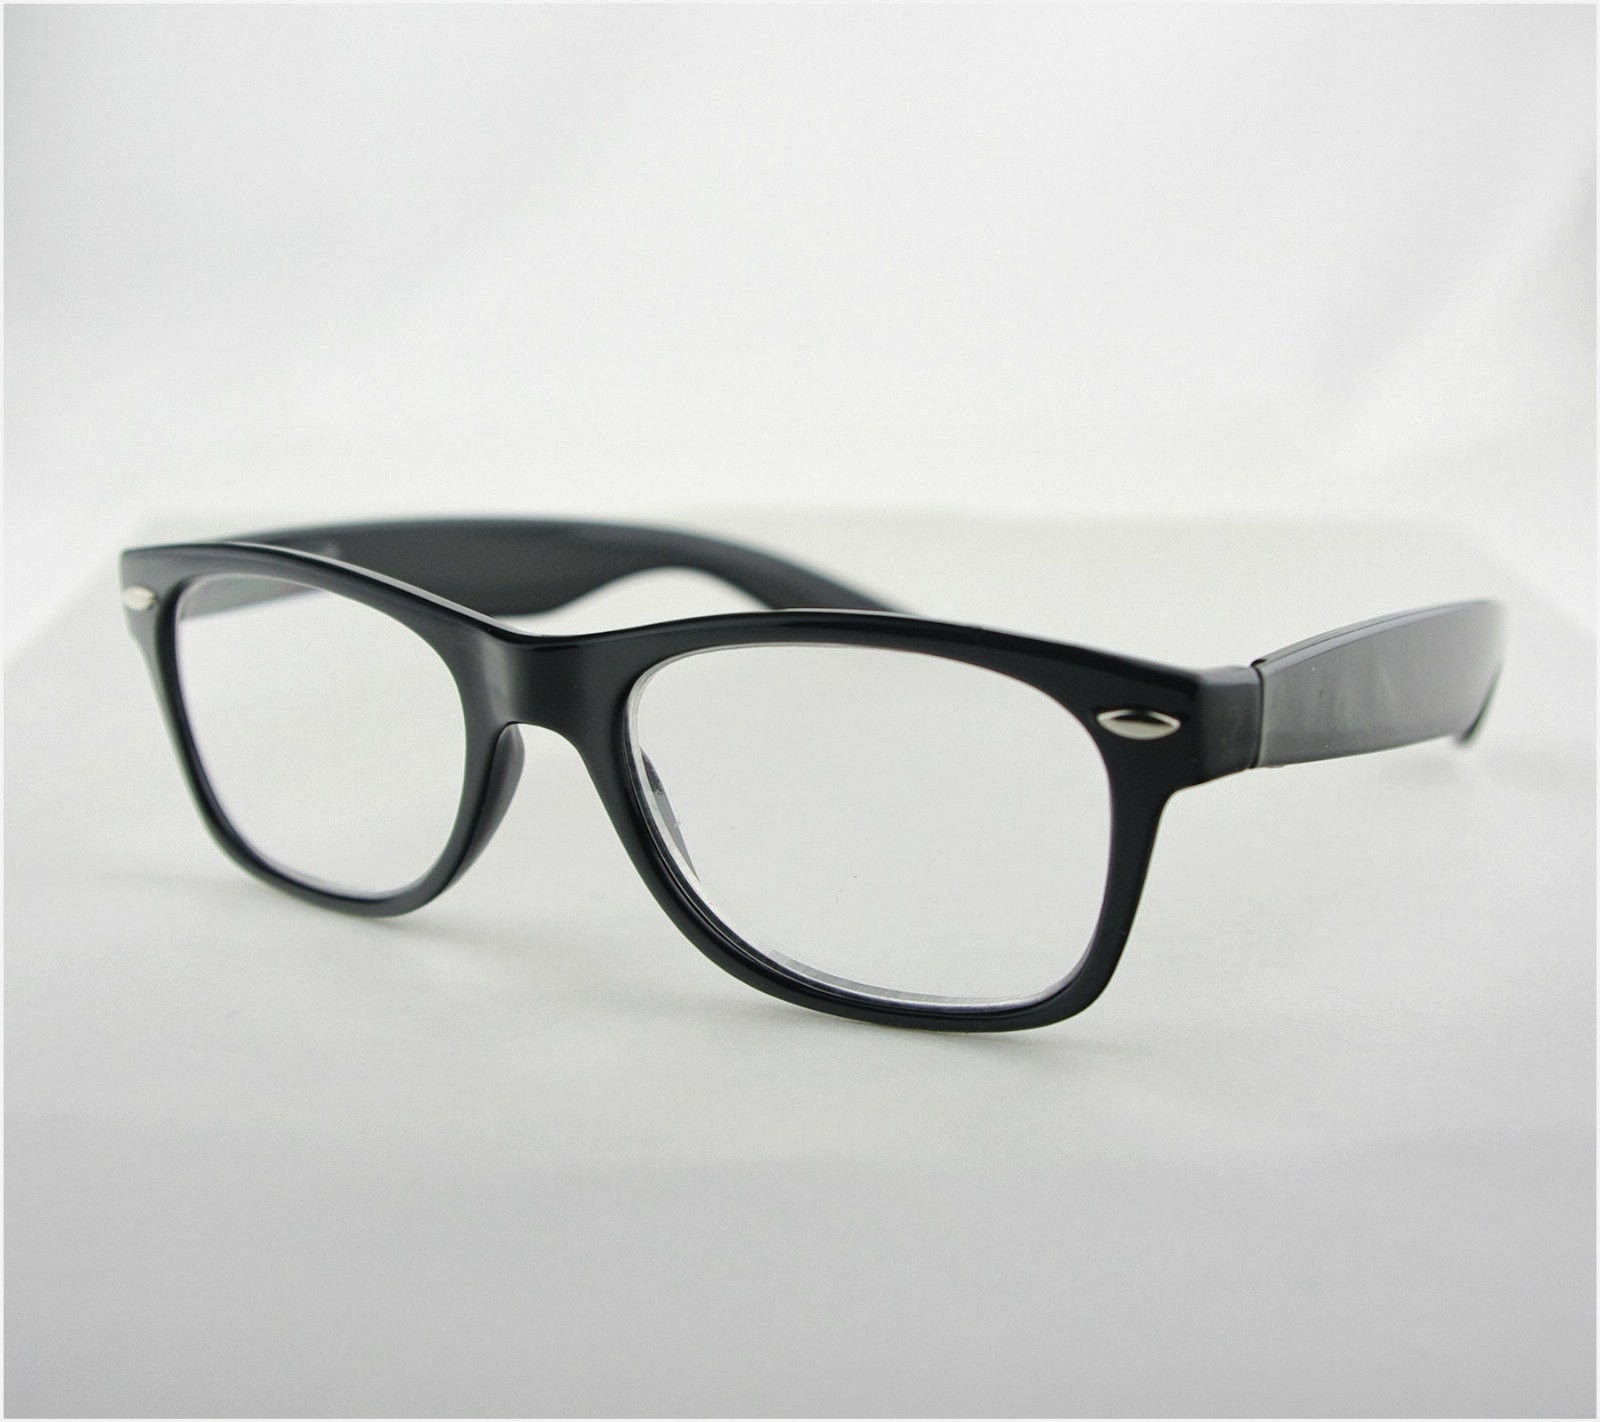 f5fdd0f7208 ... reading glasses has the mens reading glasses design and women reading  glasses design. For more information you can see more options and pictures  on ebay